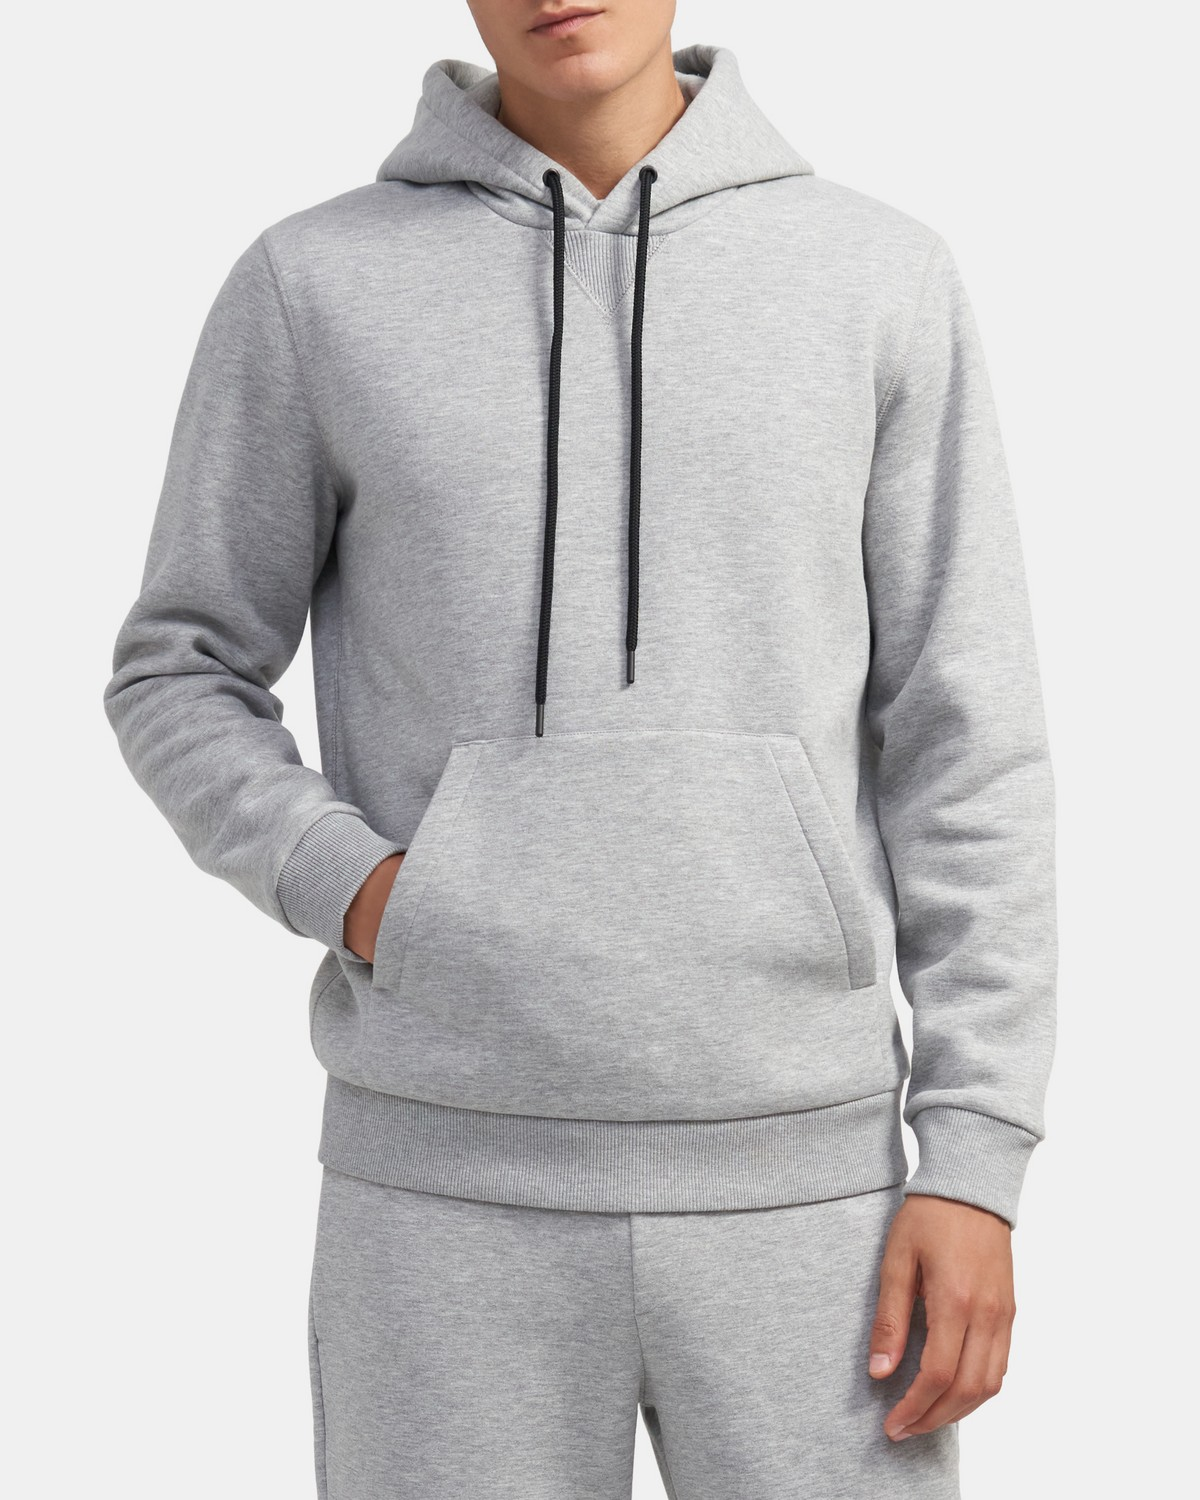 Essential Hoodie in Fleece